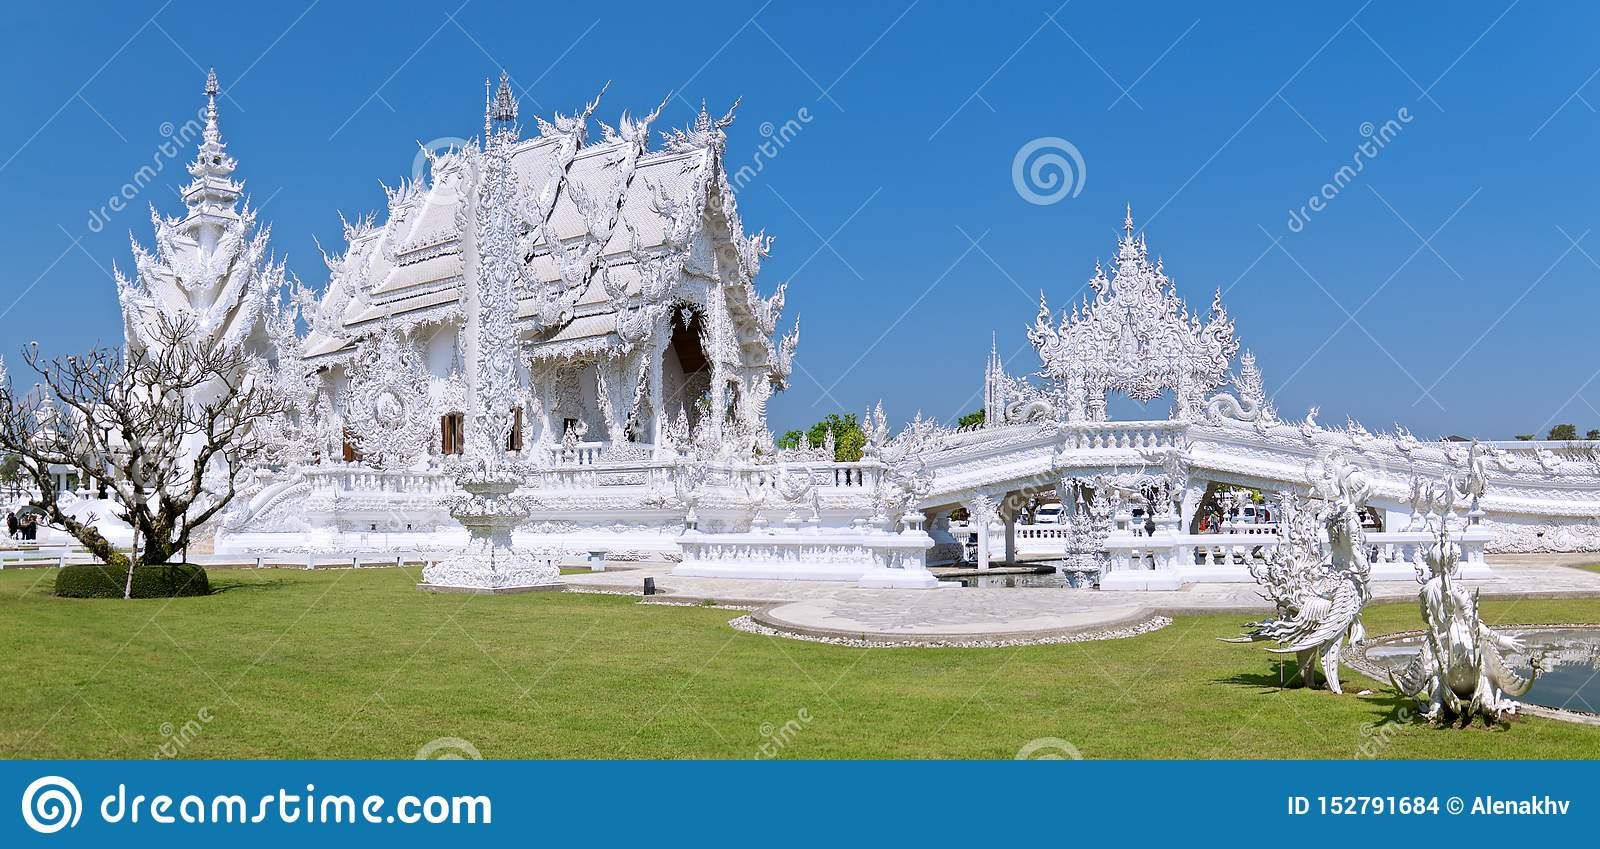 Panoramic view of the famous amazing White Buddhist temple against the blue cloudless sky